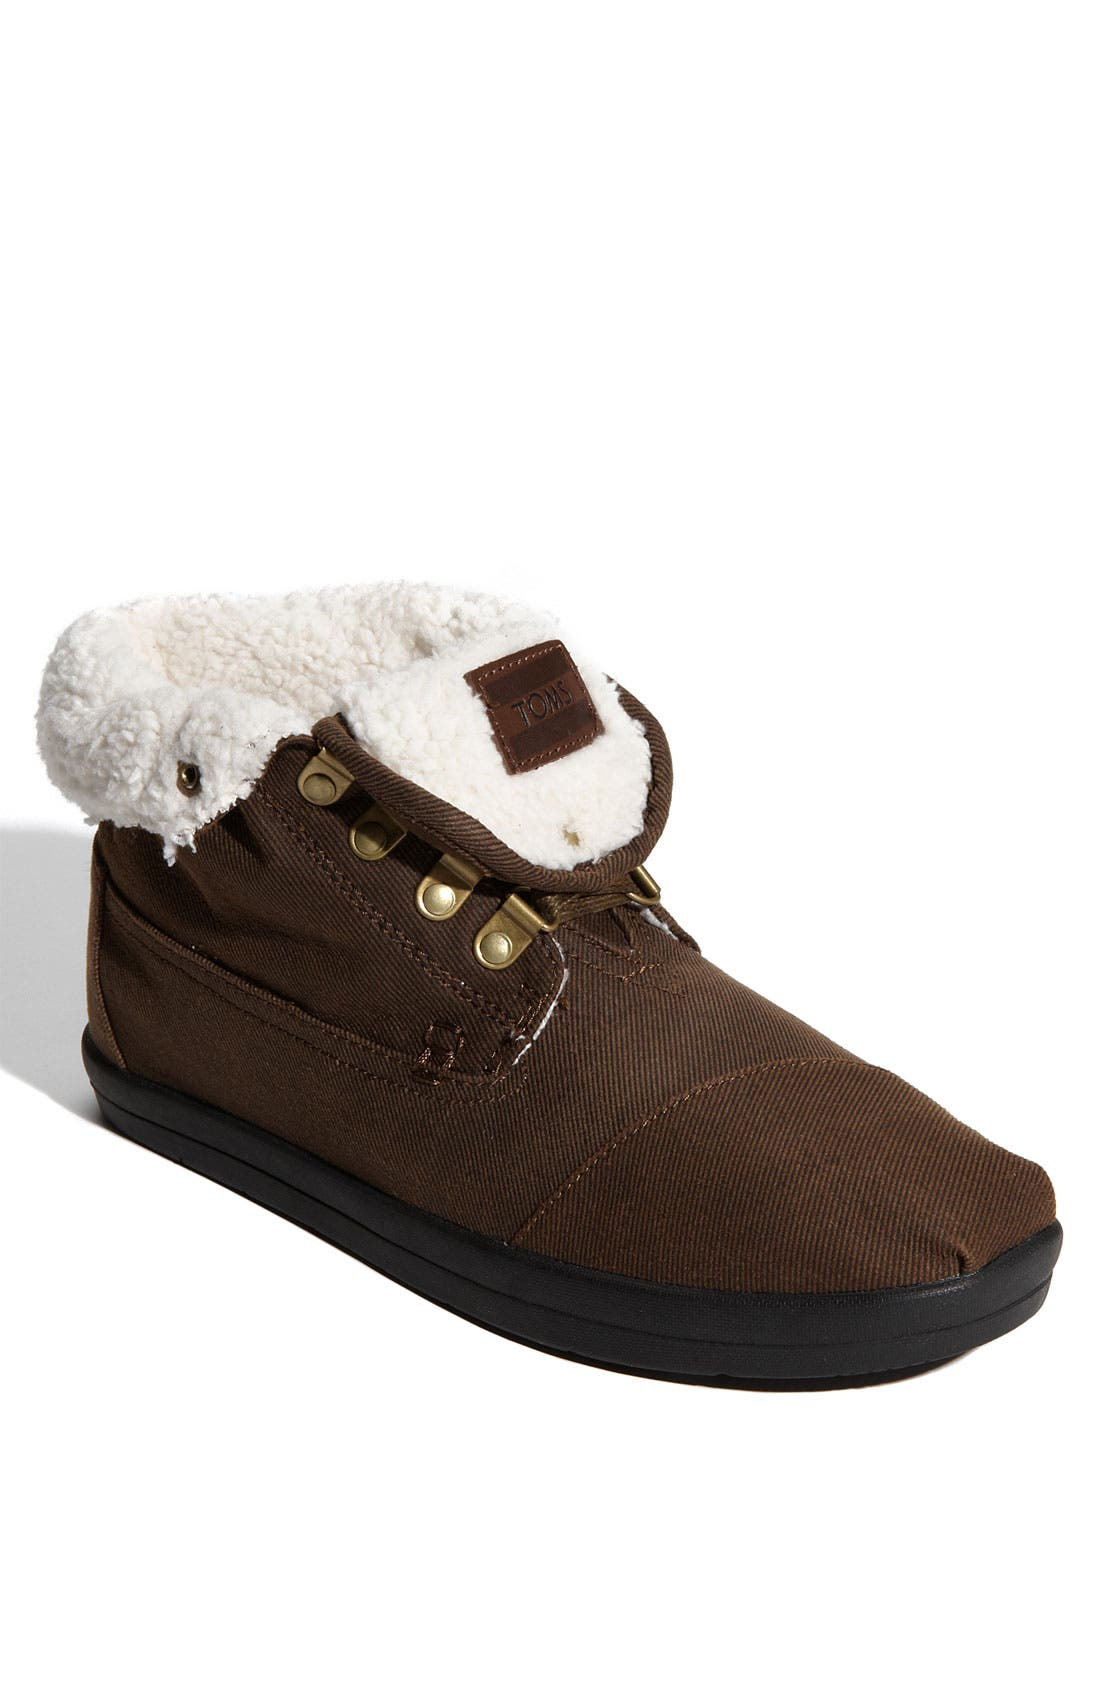 Main Image - TOMS 'Highlands' Fleece Boot (Men)